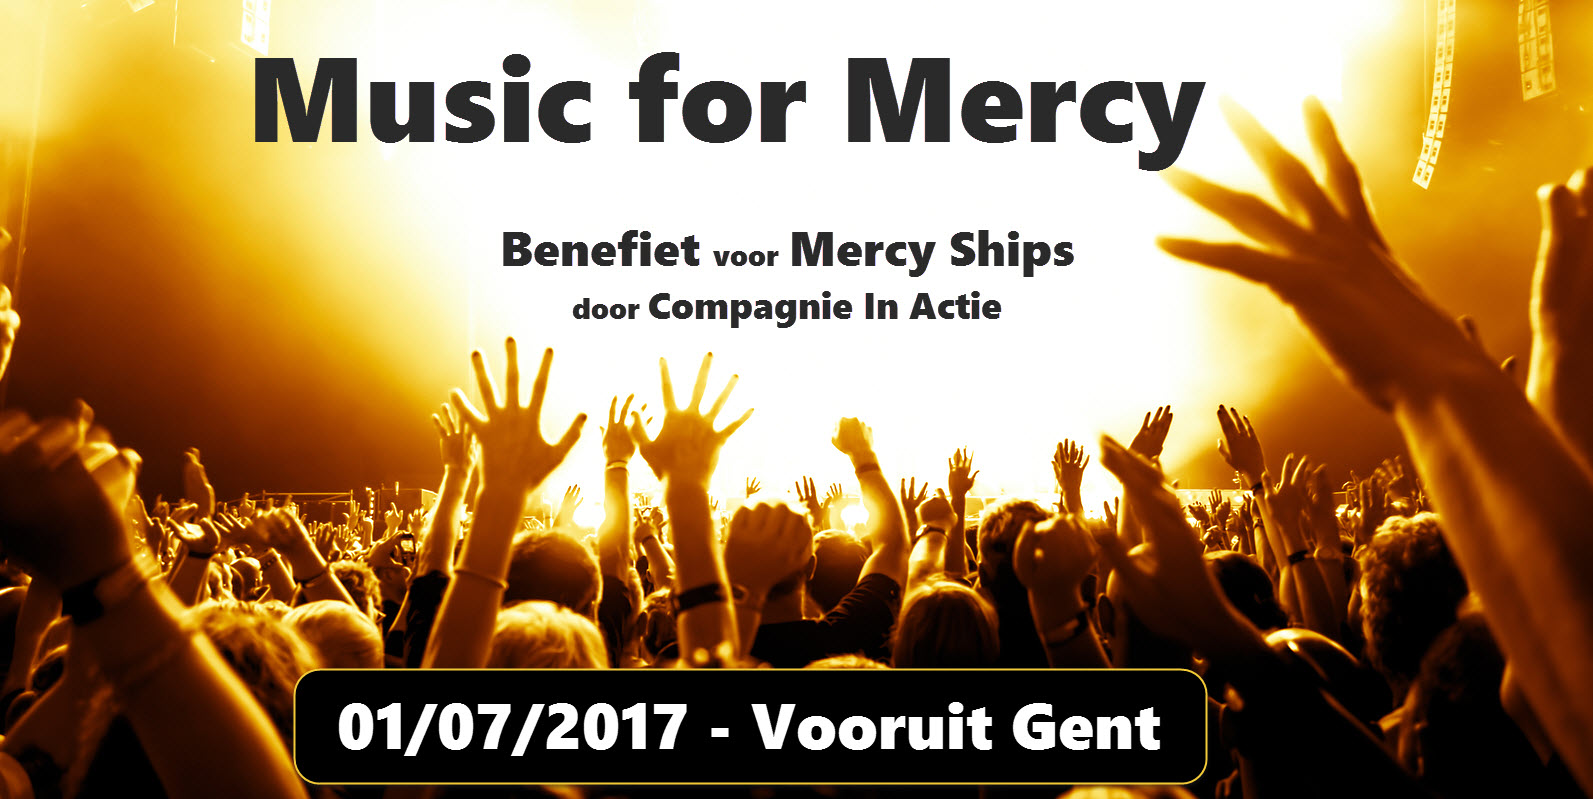 Music for Mercy